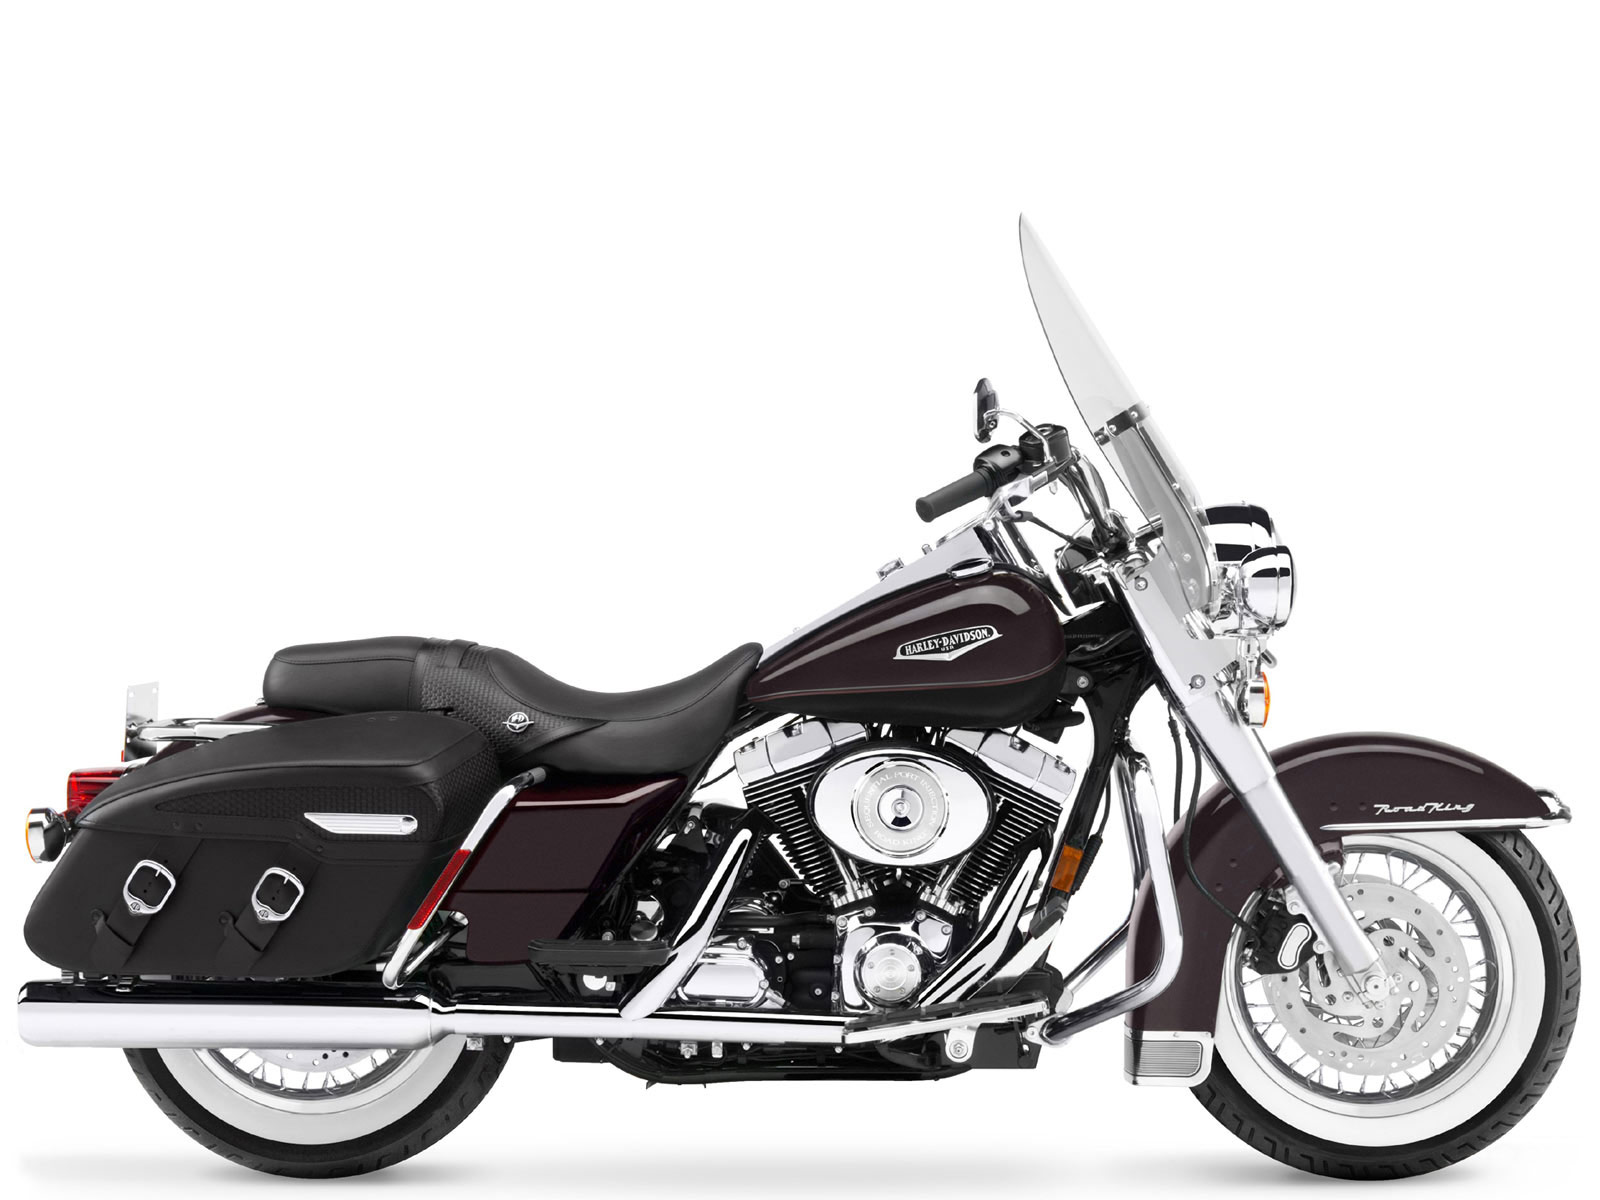 2005 harley davidson flhrci road king classic insurance. Black Bedroom Furniture Sets. Home Design Ideas